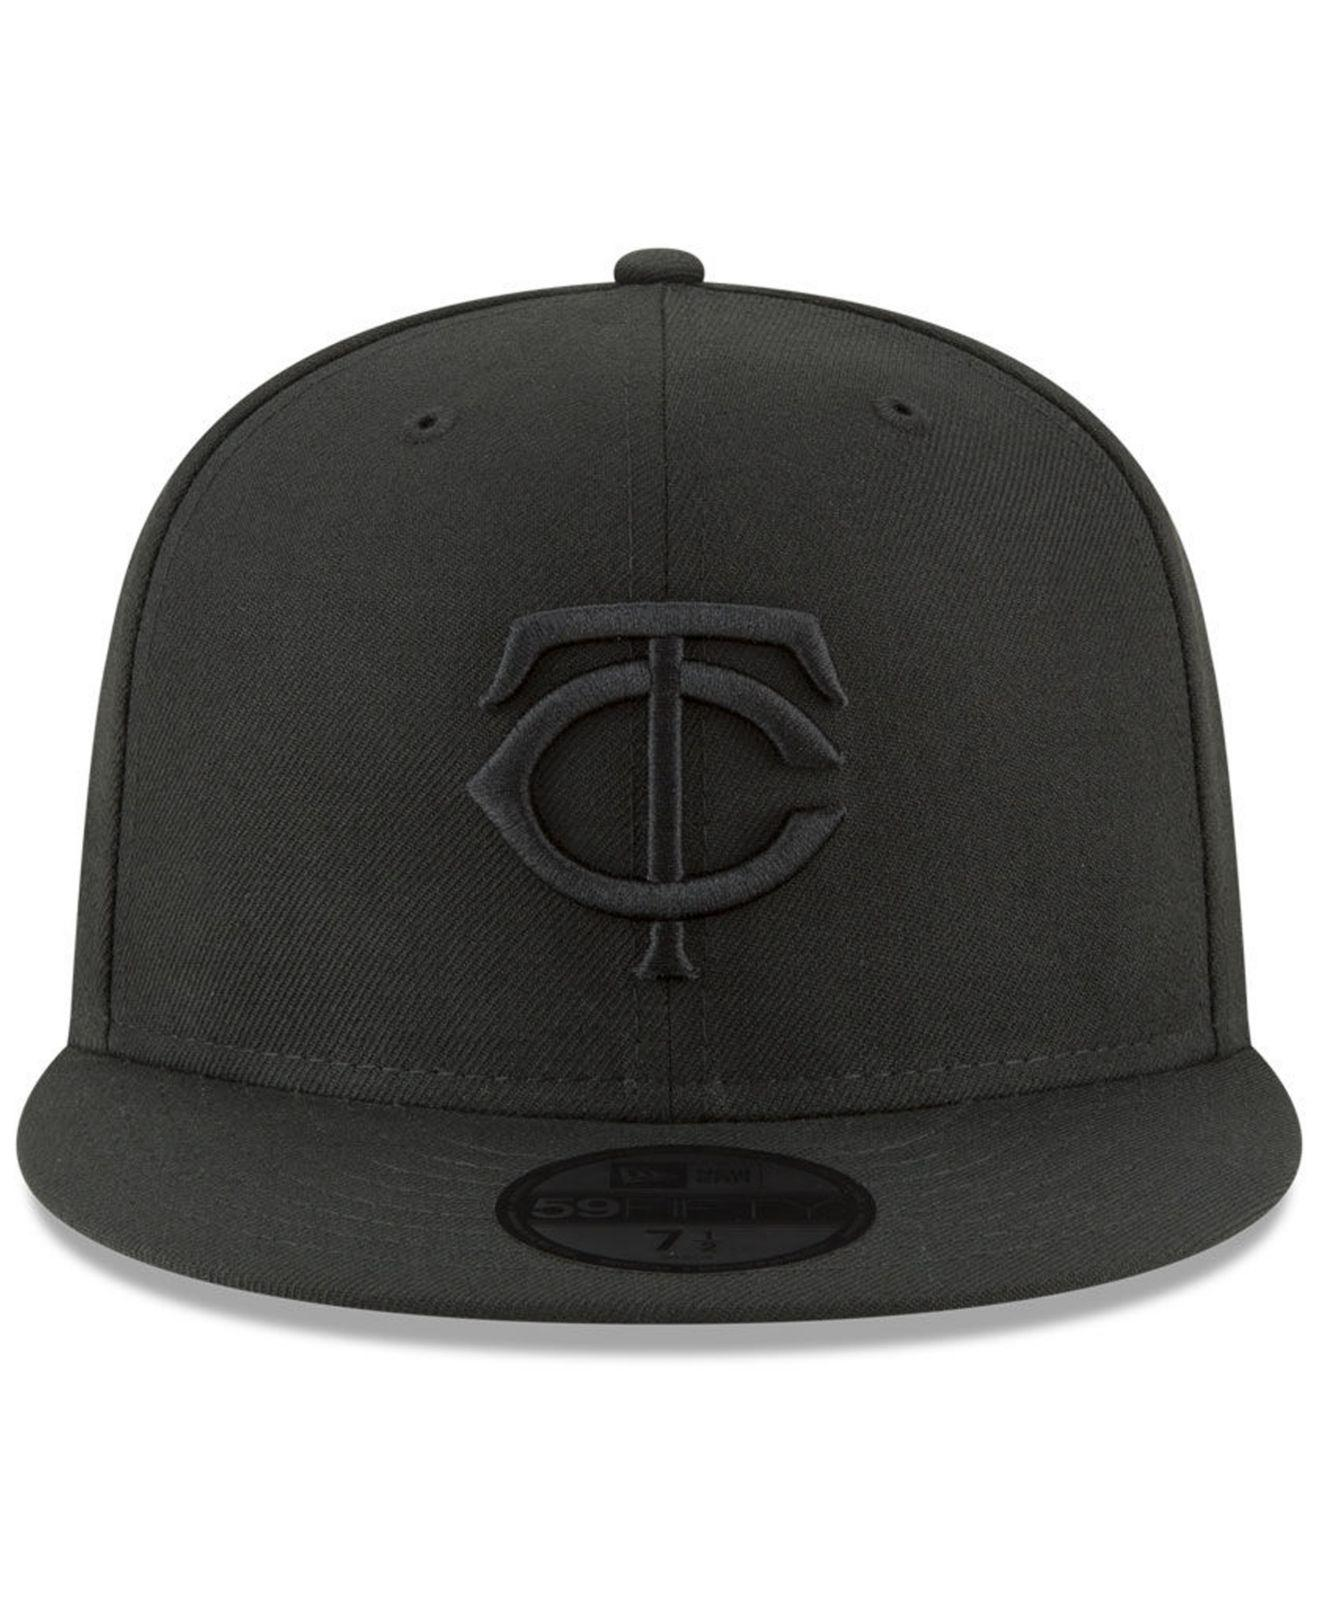 online store 8a93e f7a9b ... greece lyst ktz minnesota twins blackout 59fifty fitted cap in black  for men 930bb e2d07